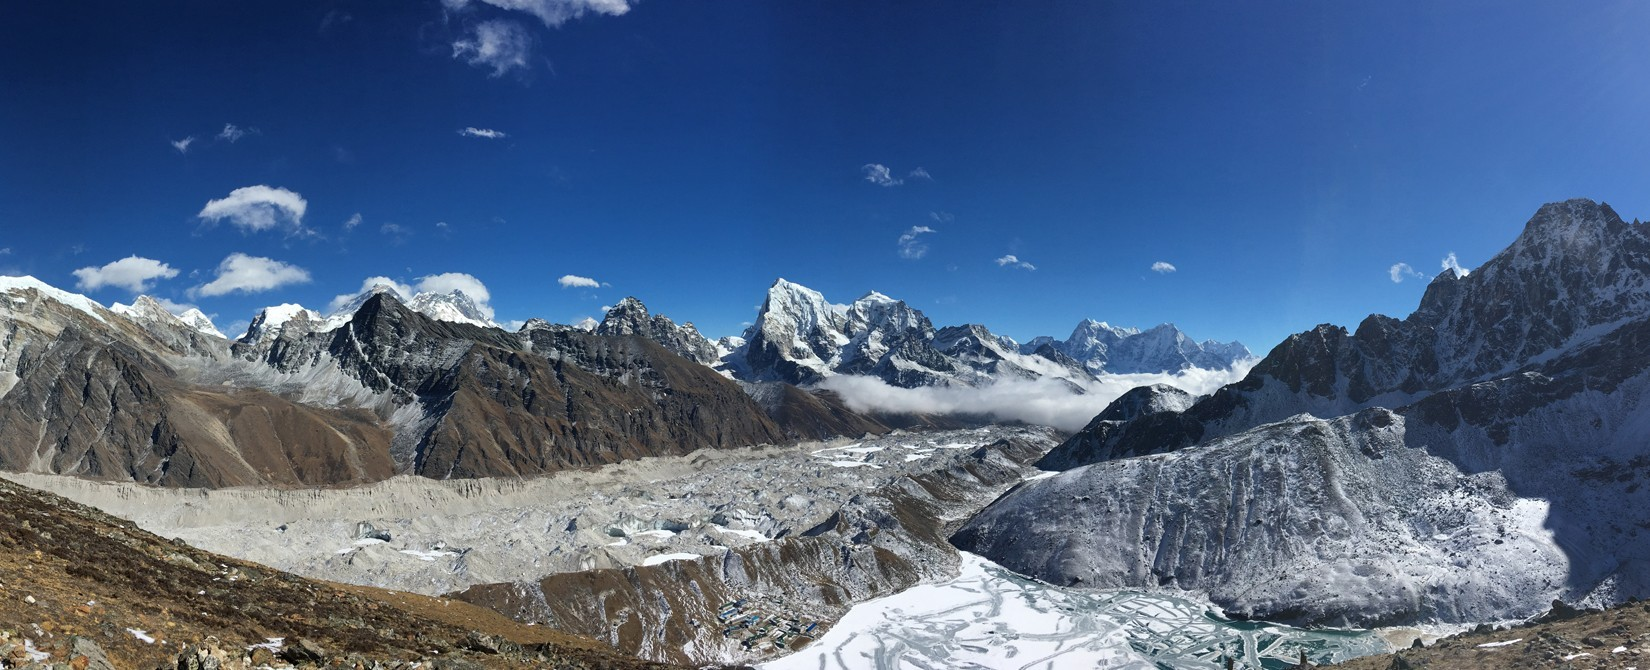 Explore the Everest region  head of the world